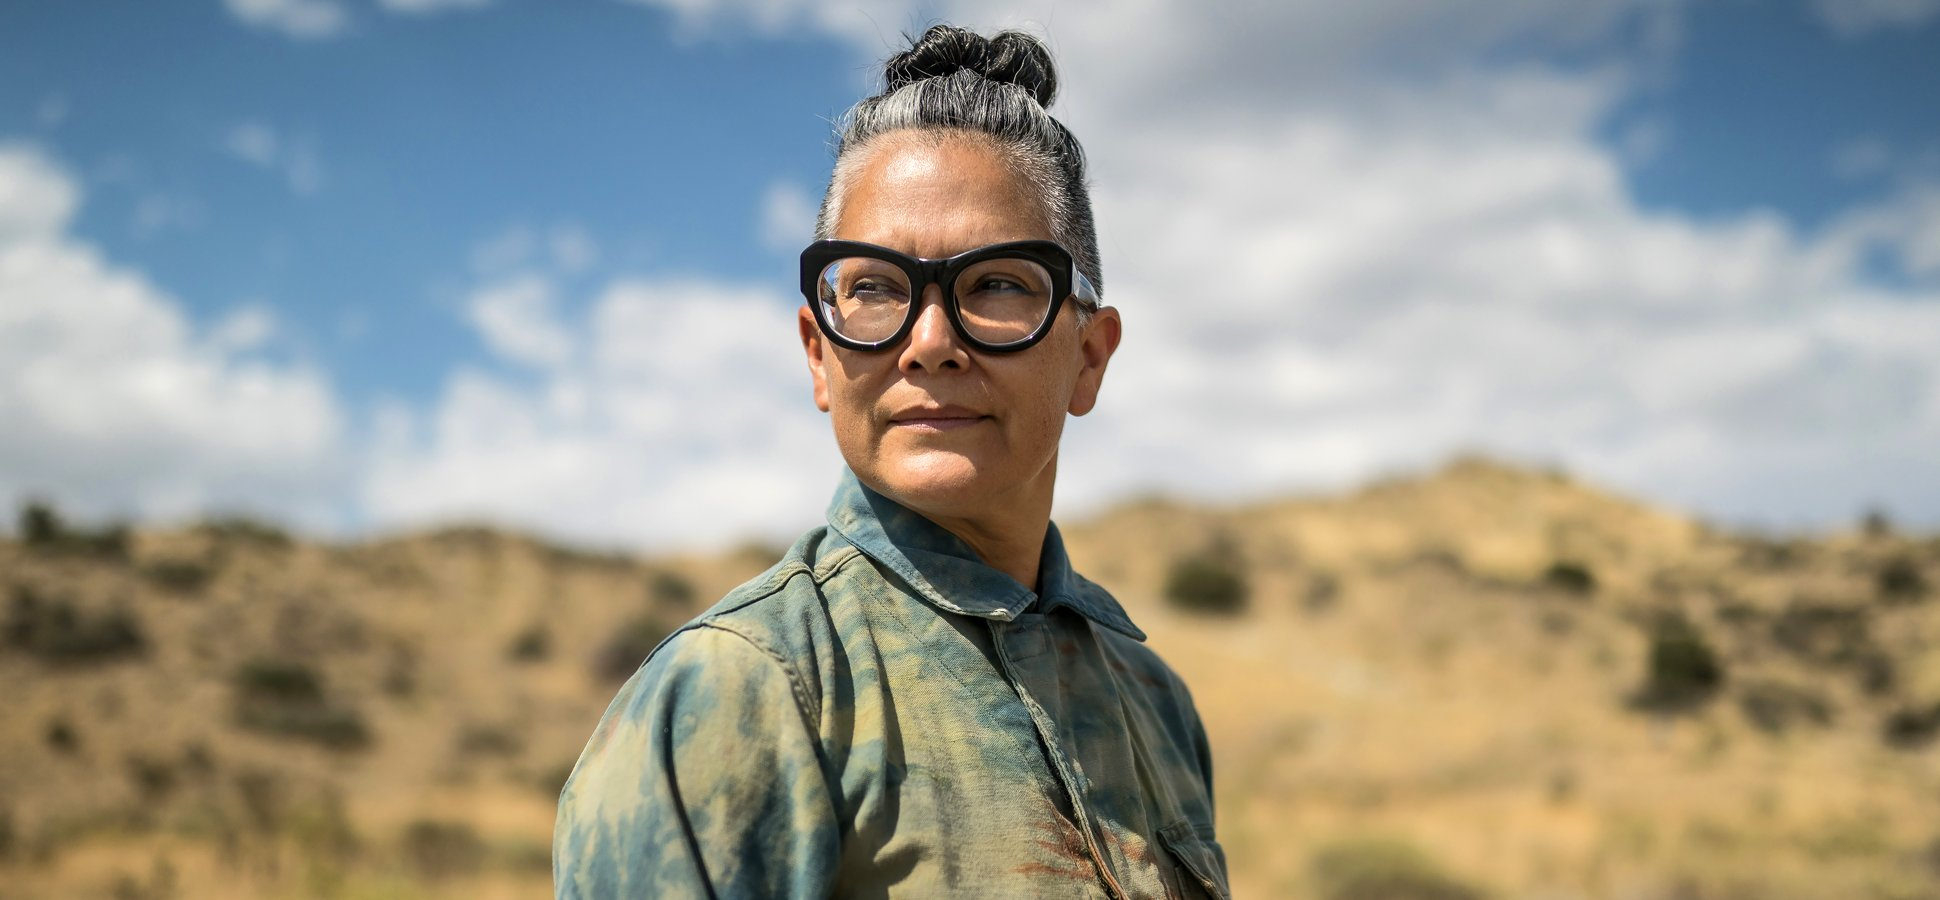 This Fashion Entrepreneur Moved From L.A. to a Navajo Reservation